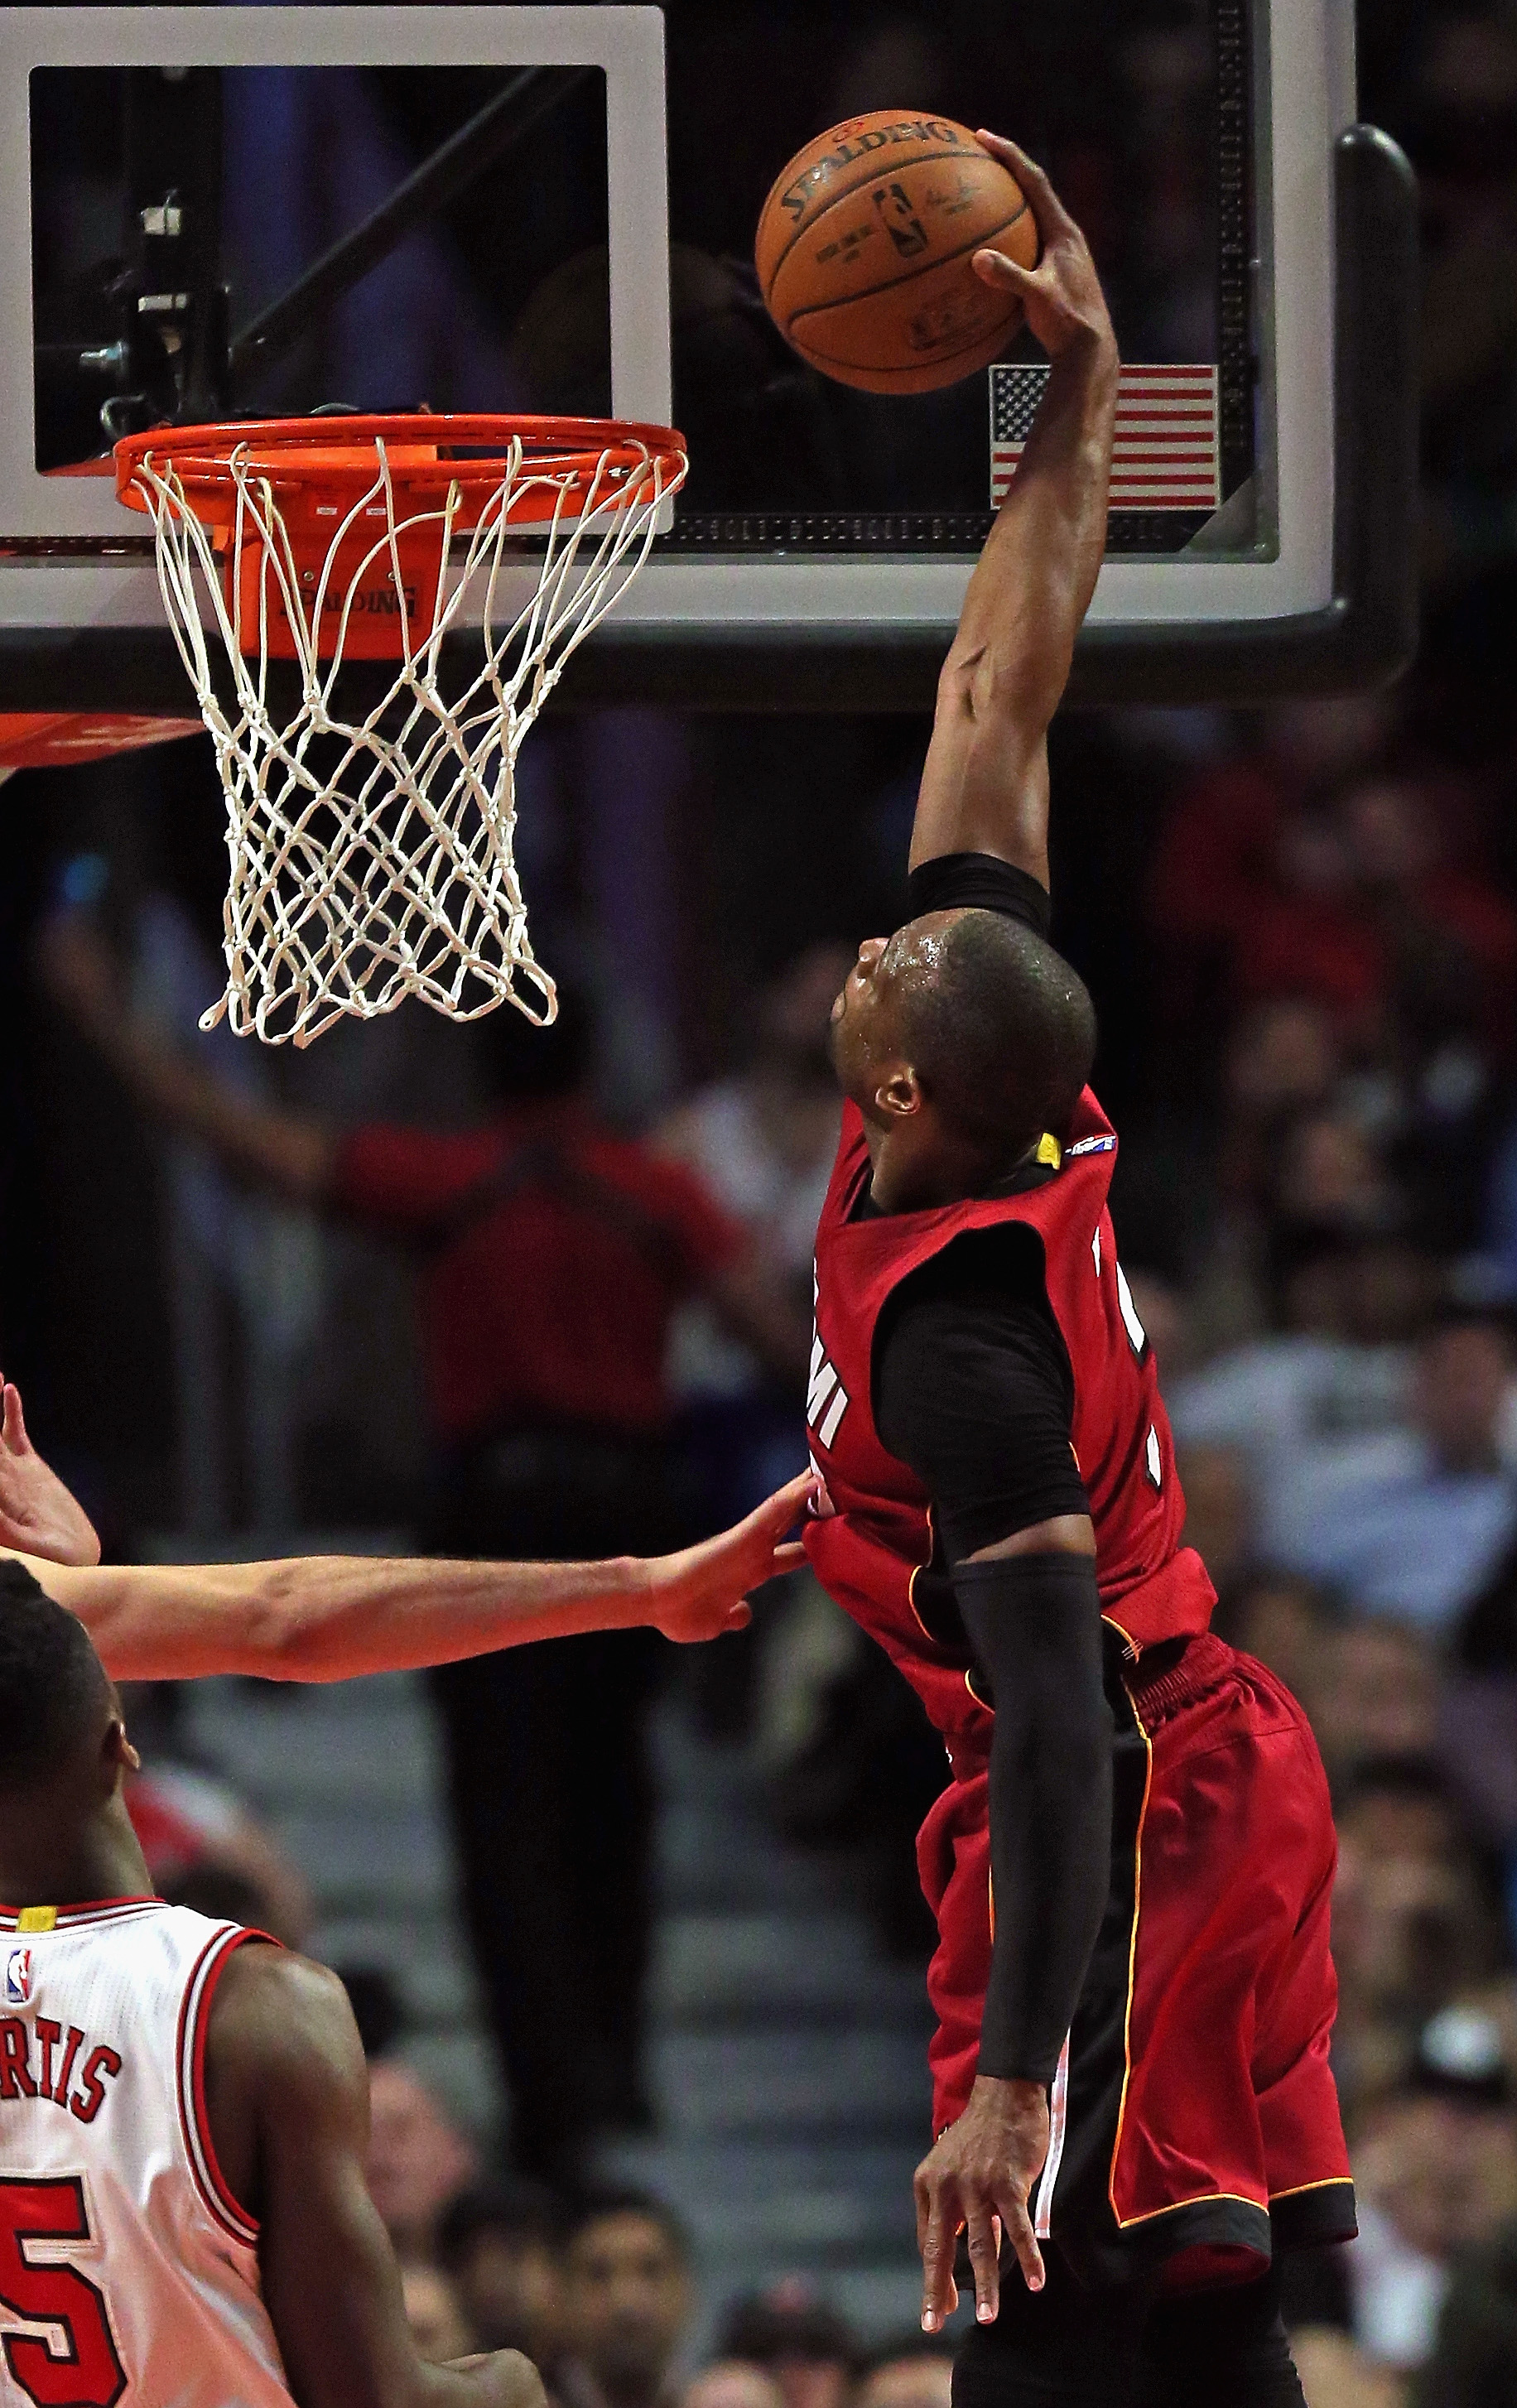 CHICAGO, IL - JANUARY 25:  Dwyane Wade #3 of the Miami Heat dunks aganst the Chicago Bulls at the United Center on January 25, 2016 in Chicago, Illinois. The Heat defeated the Bulls 89-84. (Photo by Jonathan Daniel/Getty Images)